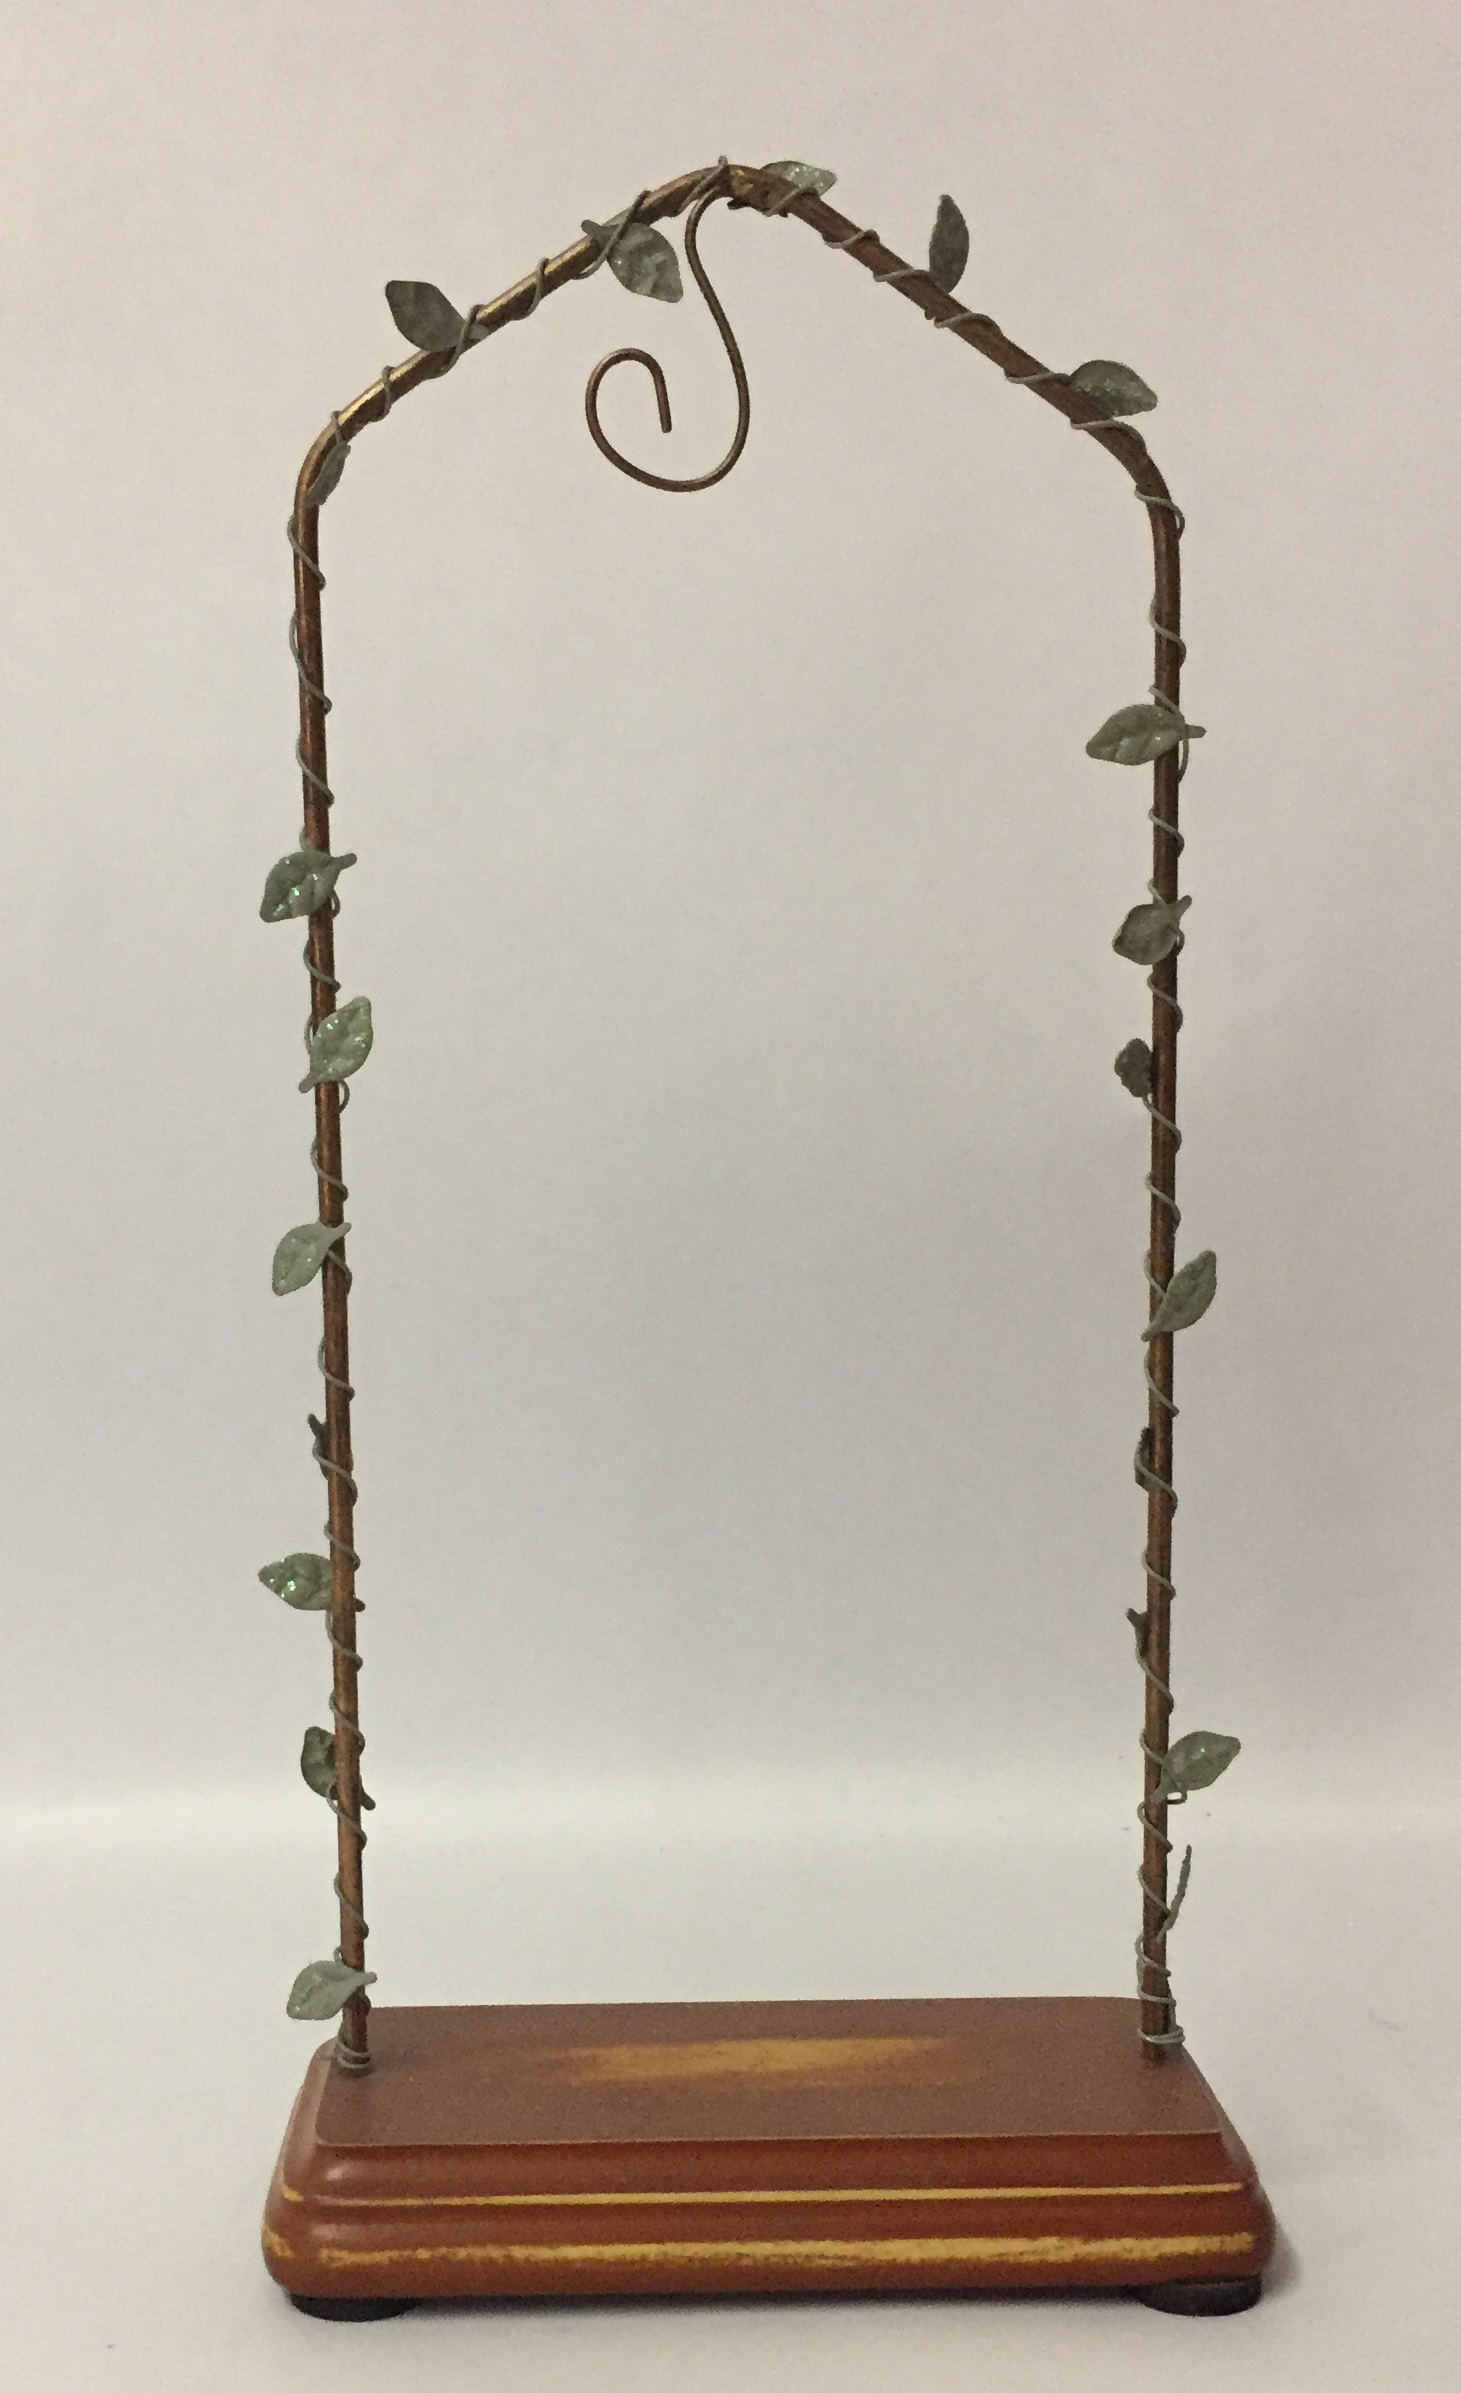 Enesco Foundations Hanging Ornament Stand 113286